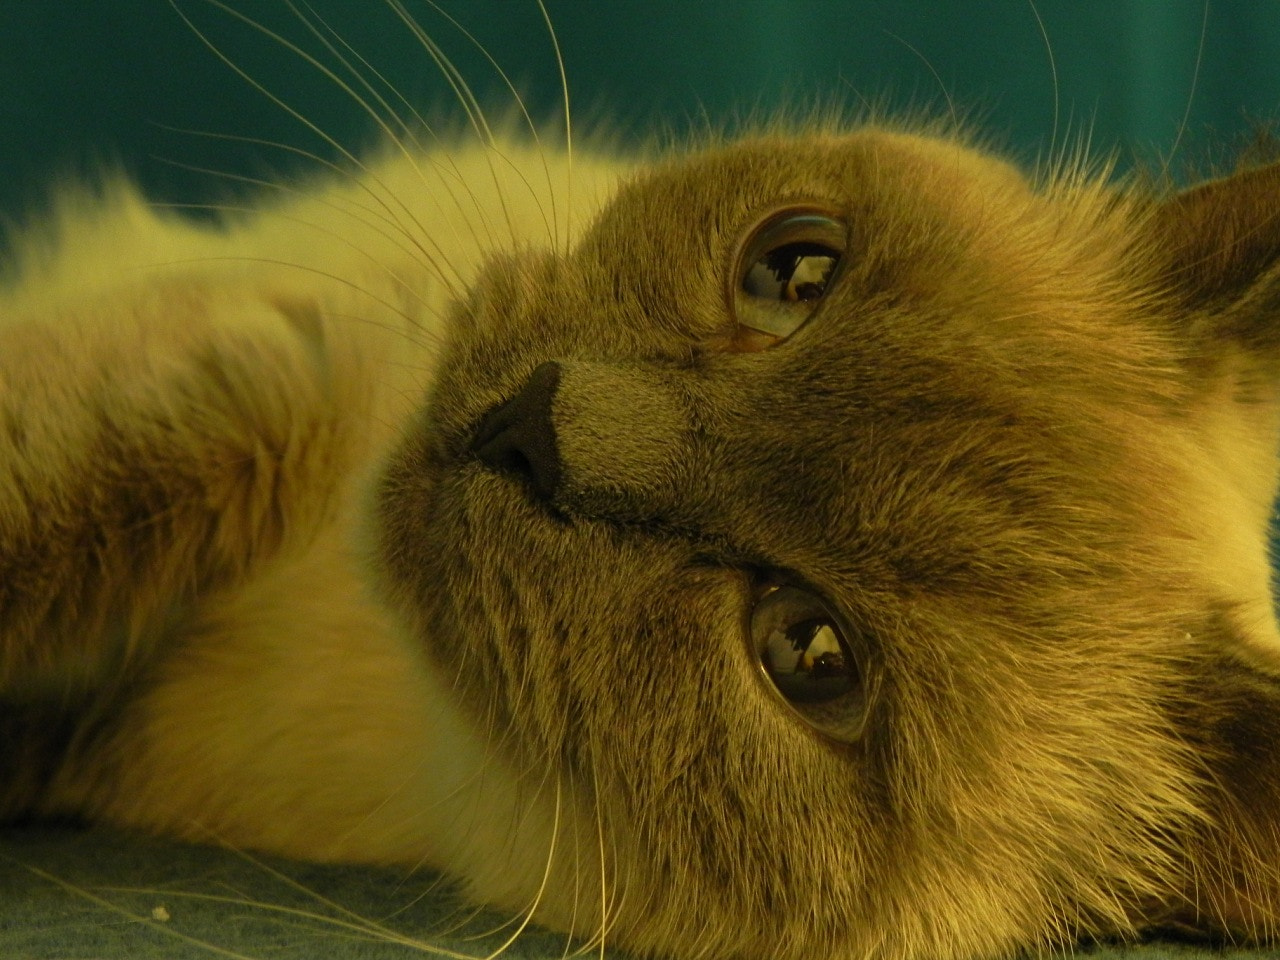 Photograph cat by Eleana Der on 500px